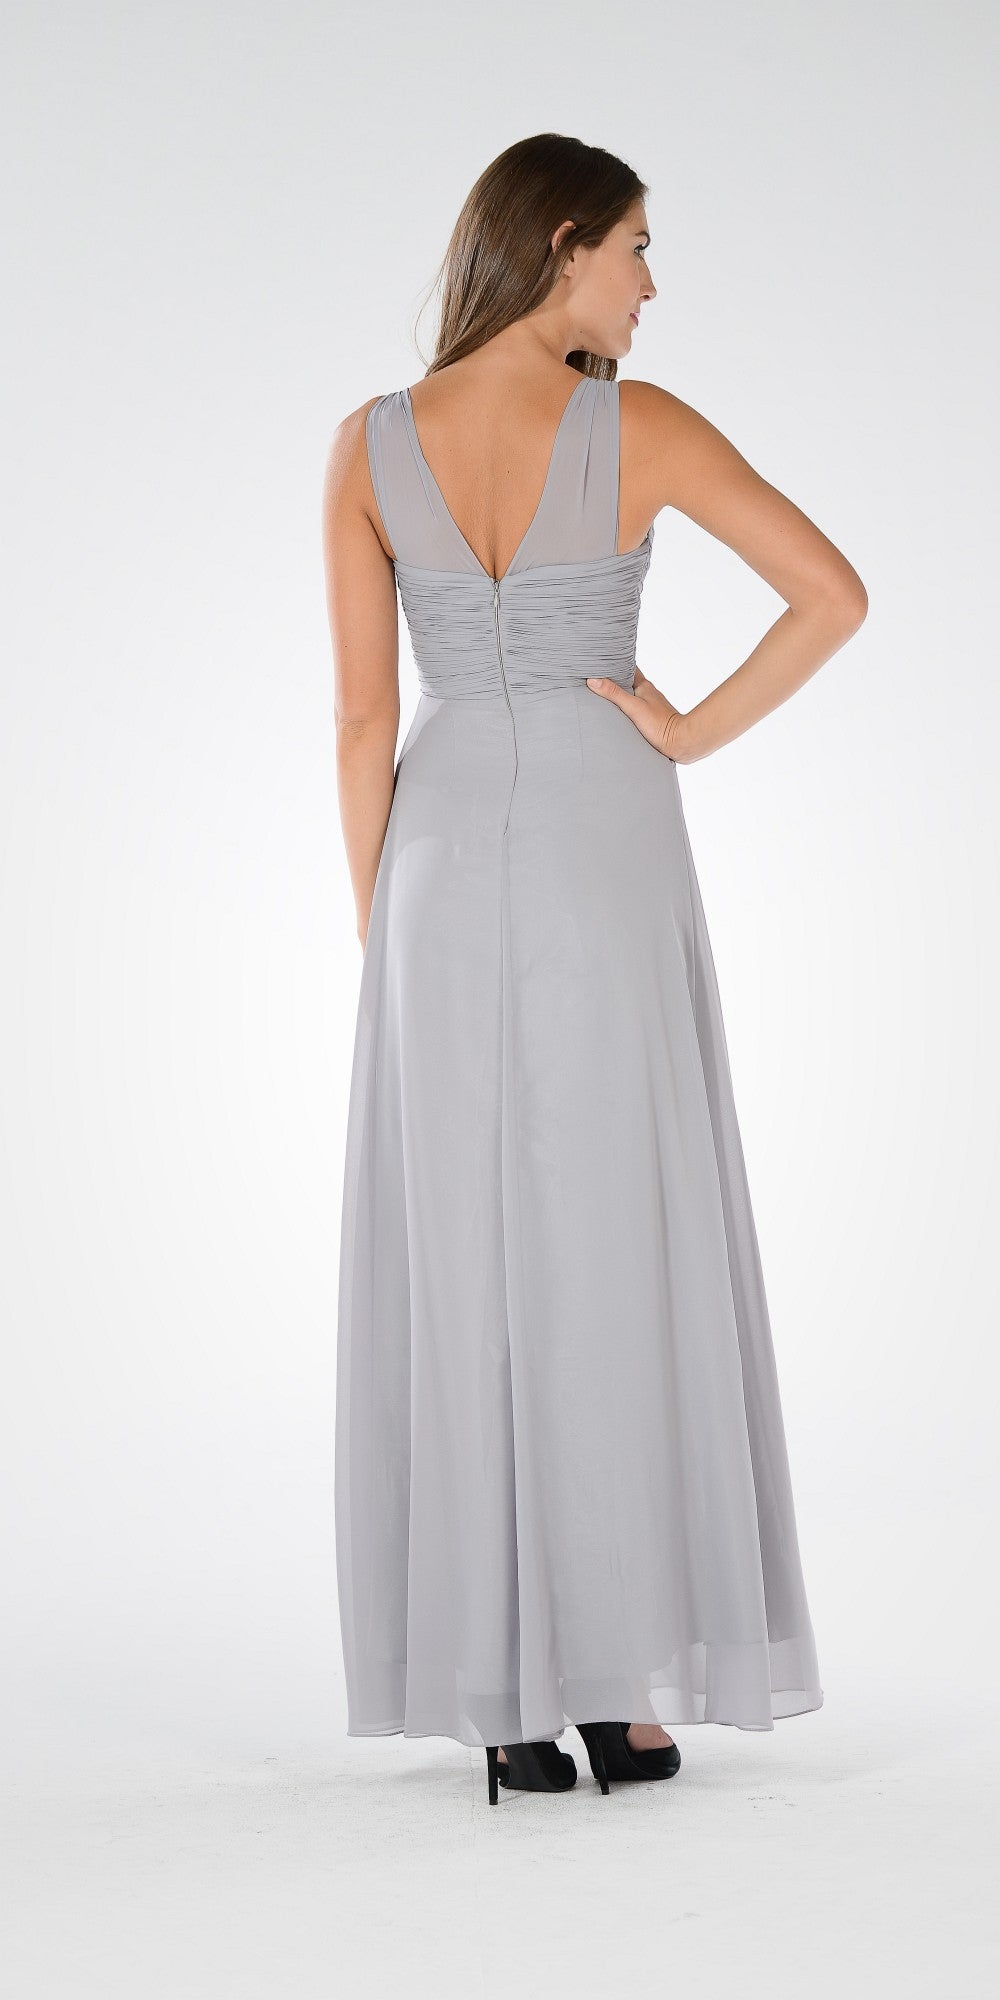 Gray V-Neck Ruched Bodice Empire Waist Chiffon Long Bridesmaids Dress